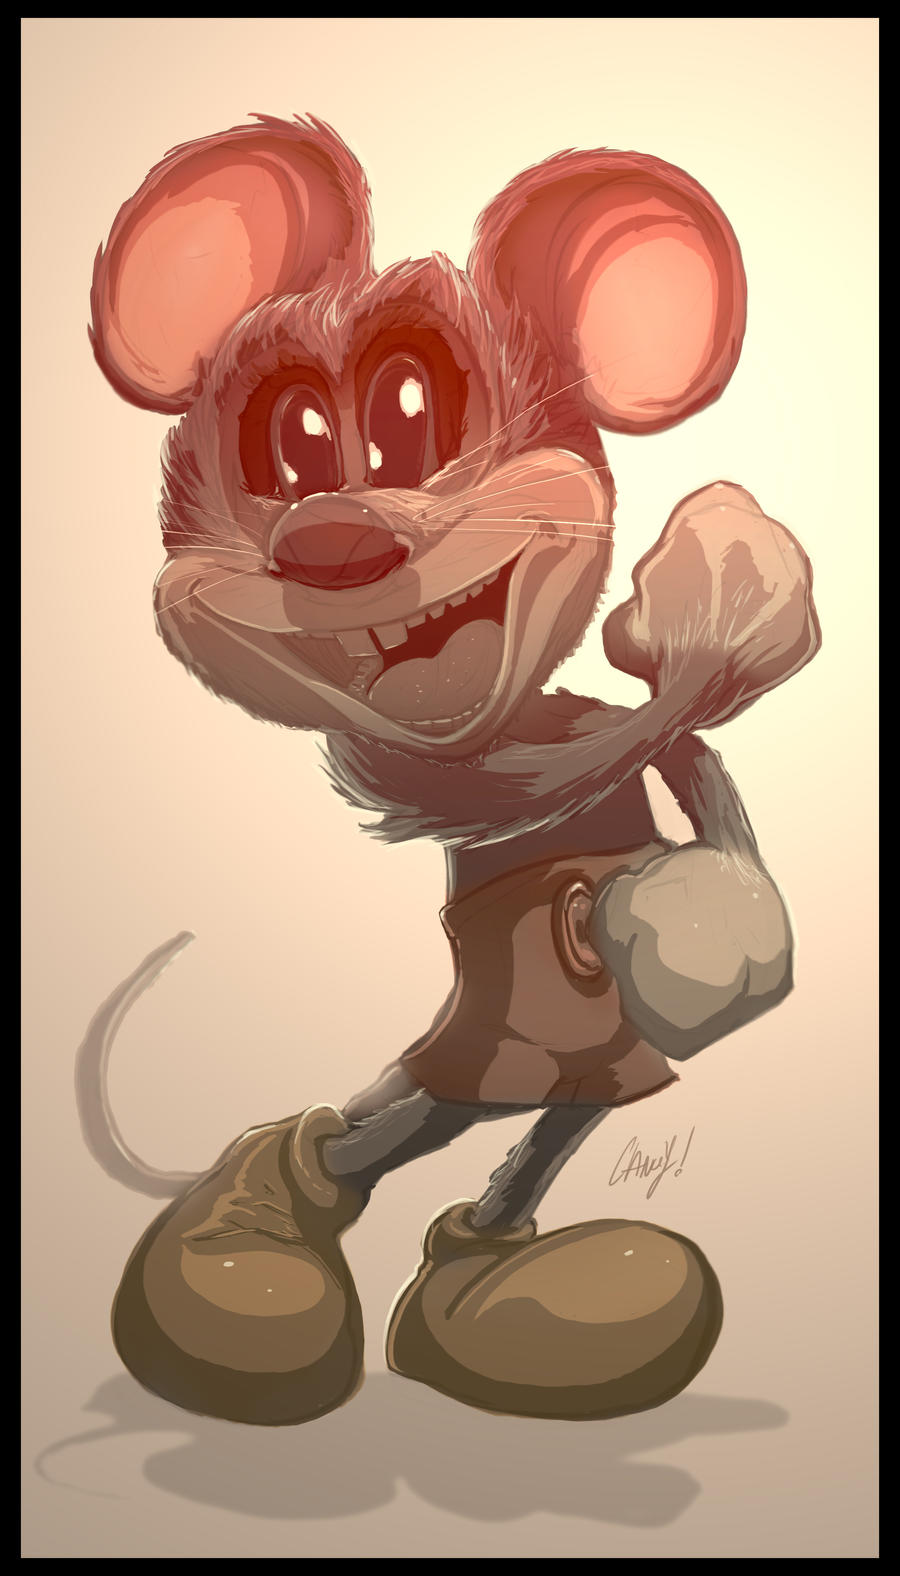 That Mouse by C-CLANCY